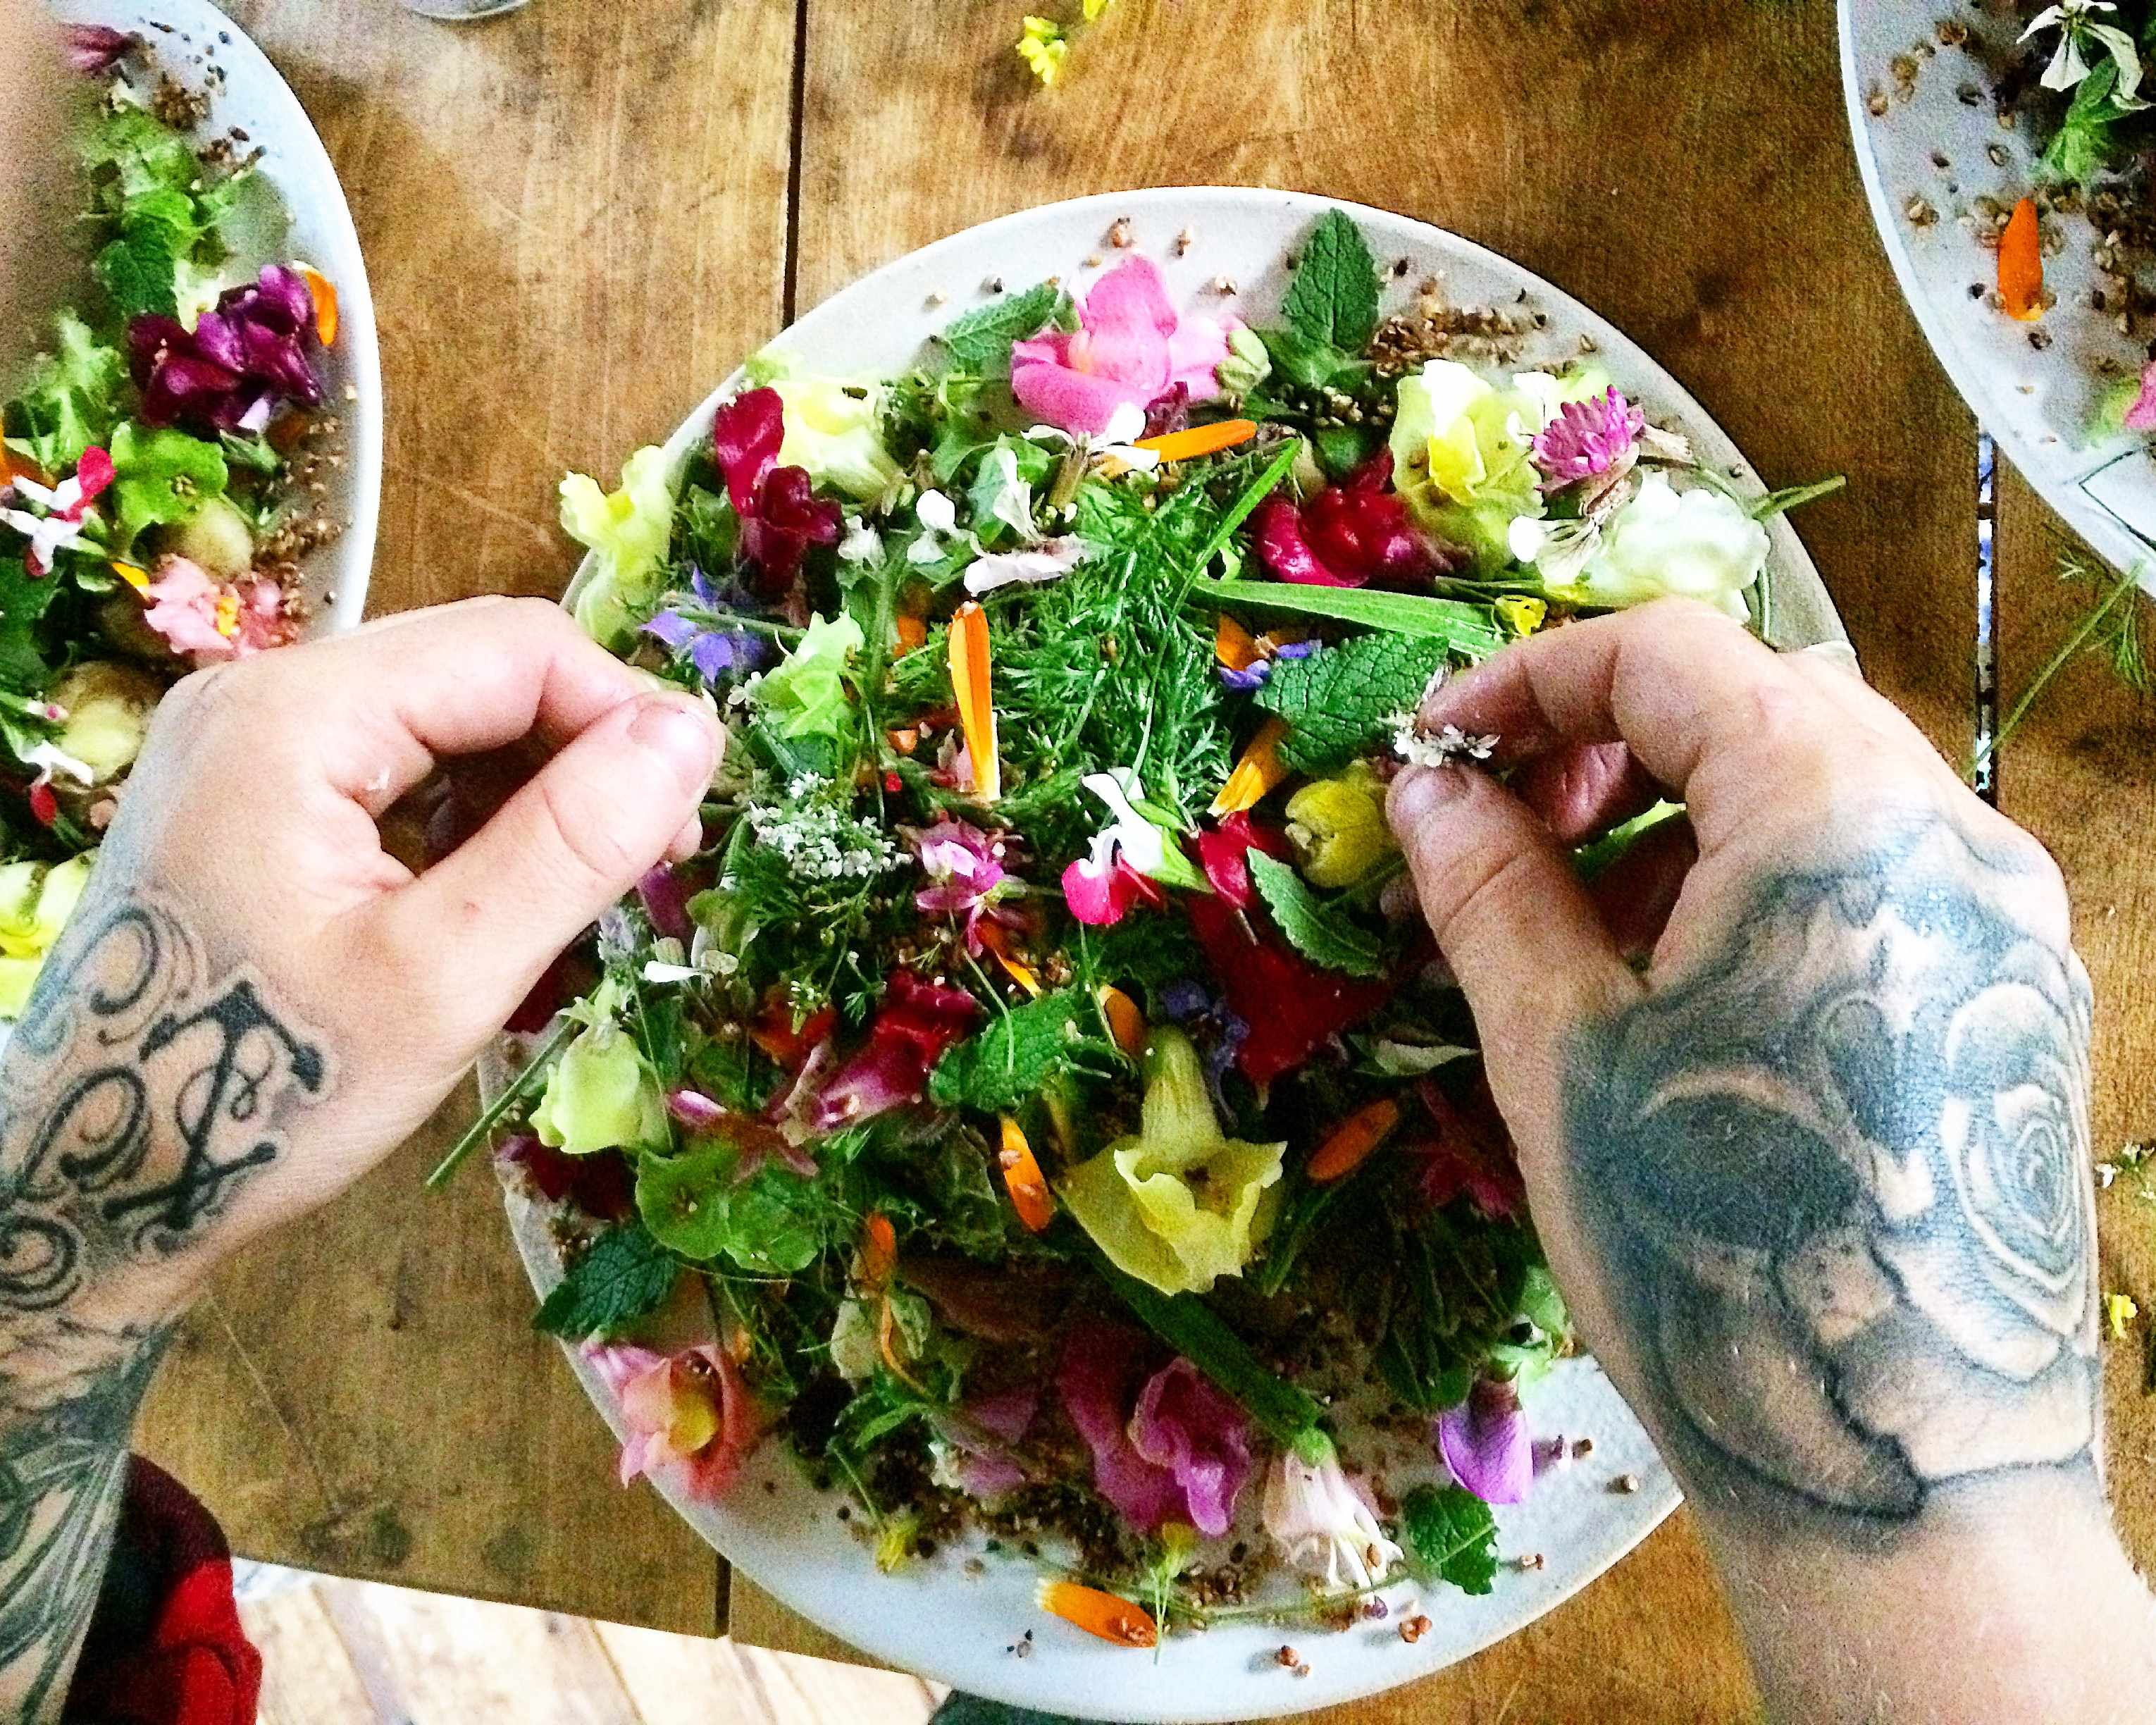 Tattooed hands preparing a colourful flower salad